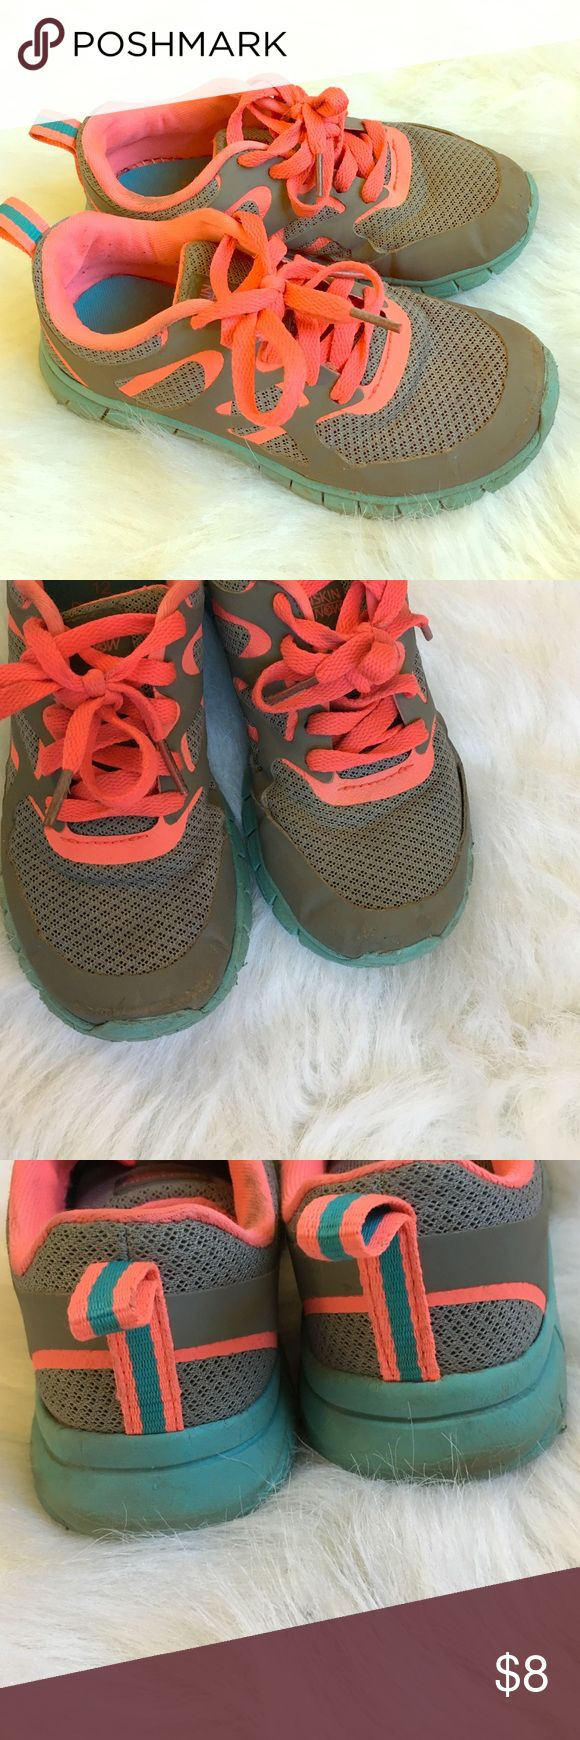 Girls tennis shoes Cute and comfy tennis shoes. Great for play time when you don't want to get your good shoes dirty! Toes a little scuffed. Danskin Now Shoes Sneakers